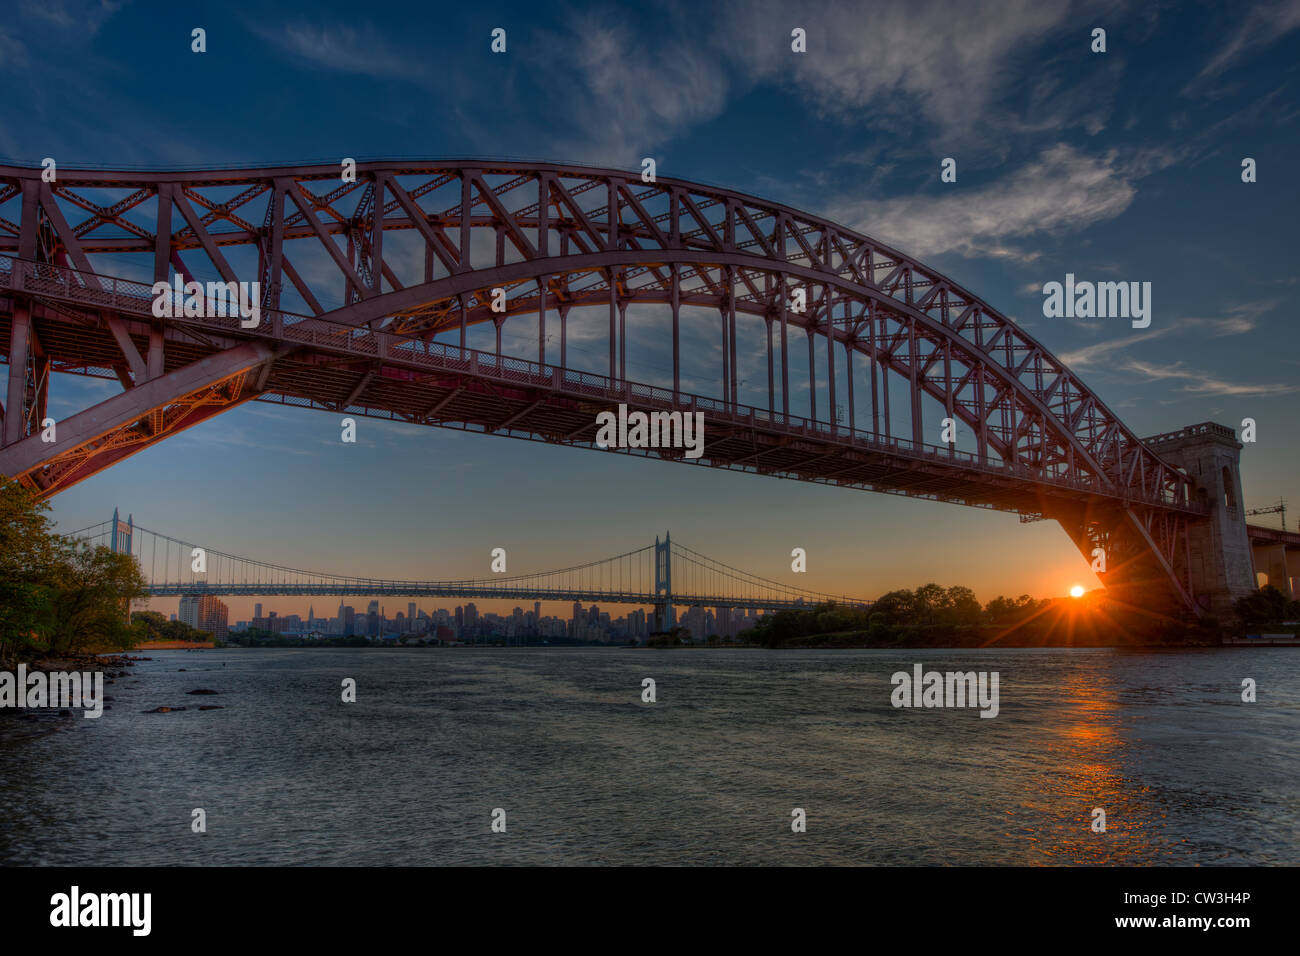 The Hell Gate and Triborough Bridges span the Hell Gate tidal strait in the East River during sunset in New York - Stock Image